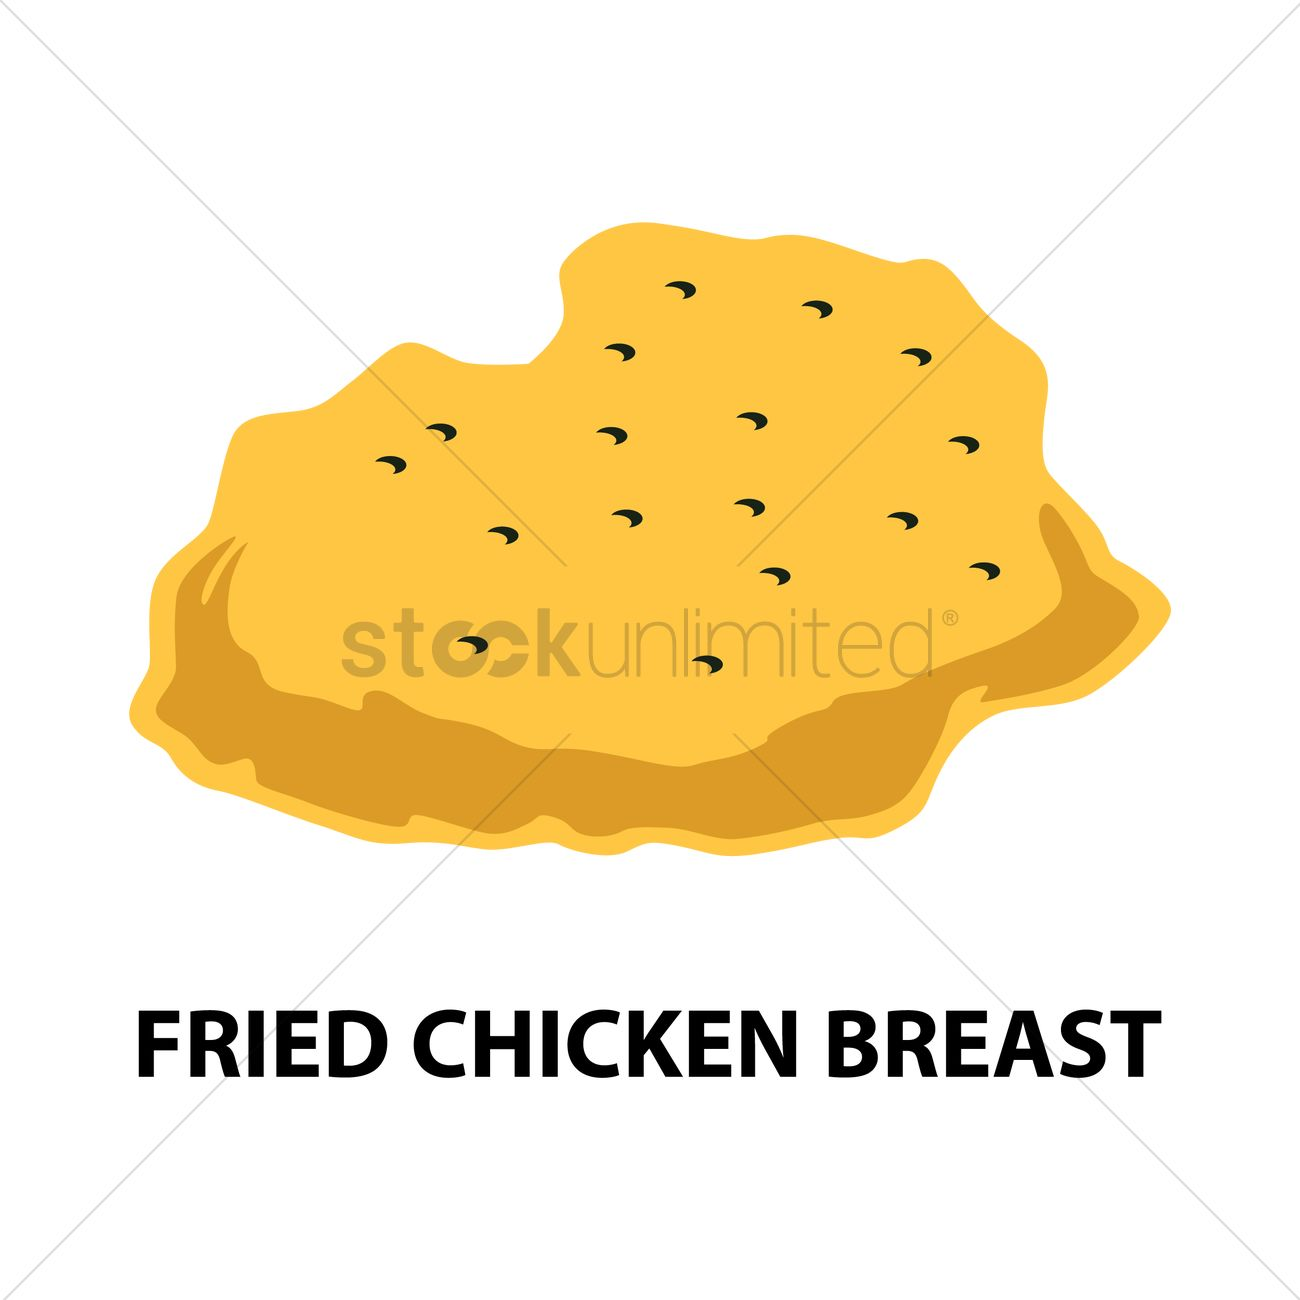 1300x1300 Fried Chicken Breast Vector Image